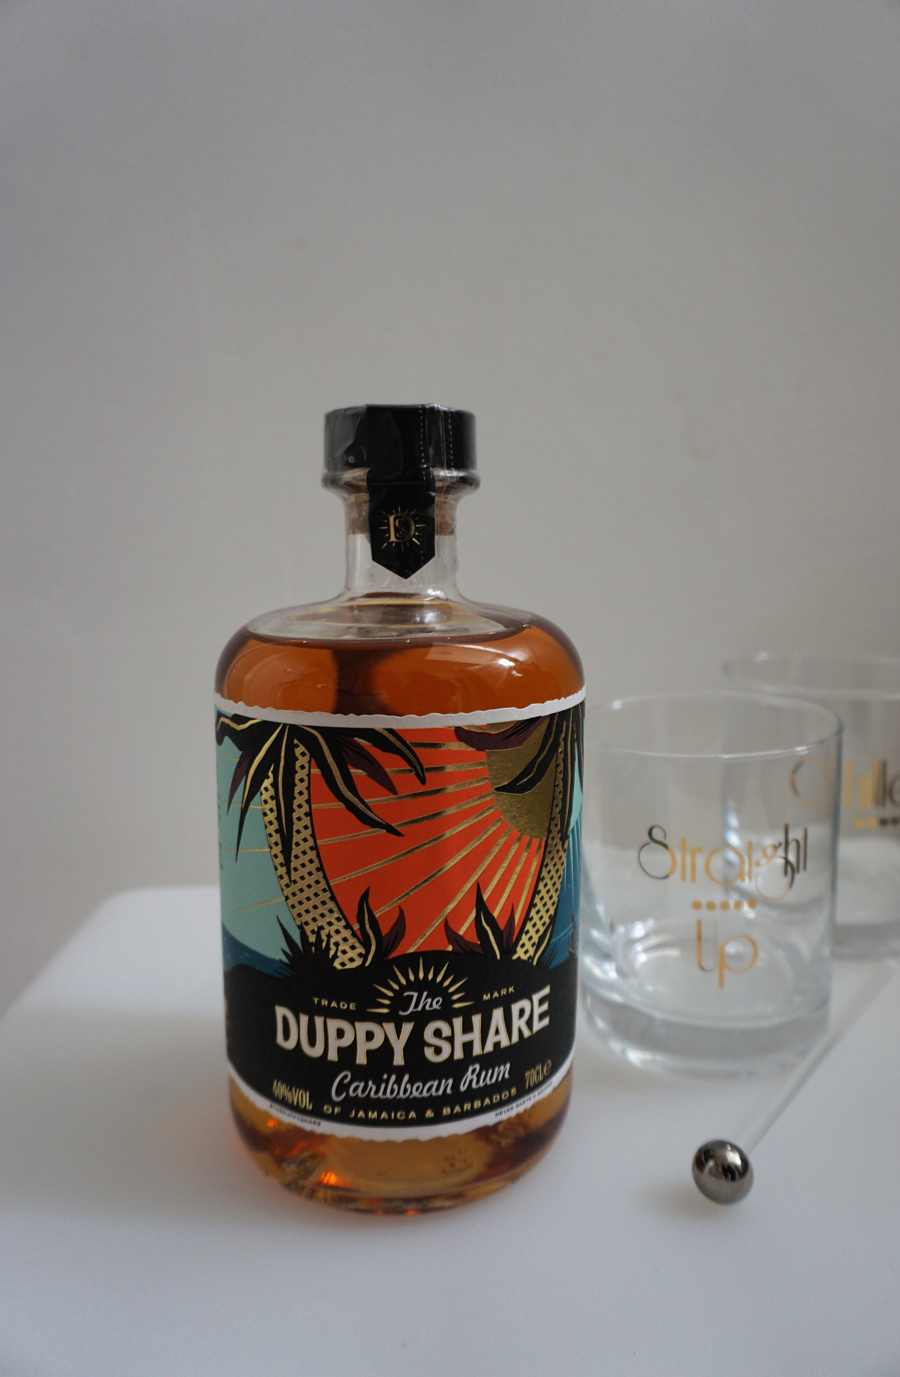 food and drink gift guide Duppy Share Caribbean Rum A bottle of it with two glasses